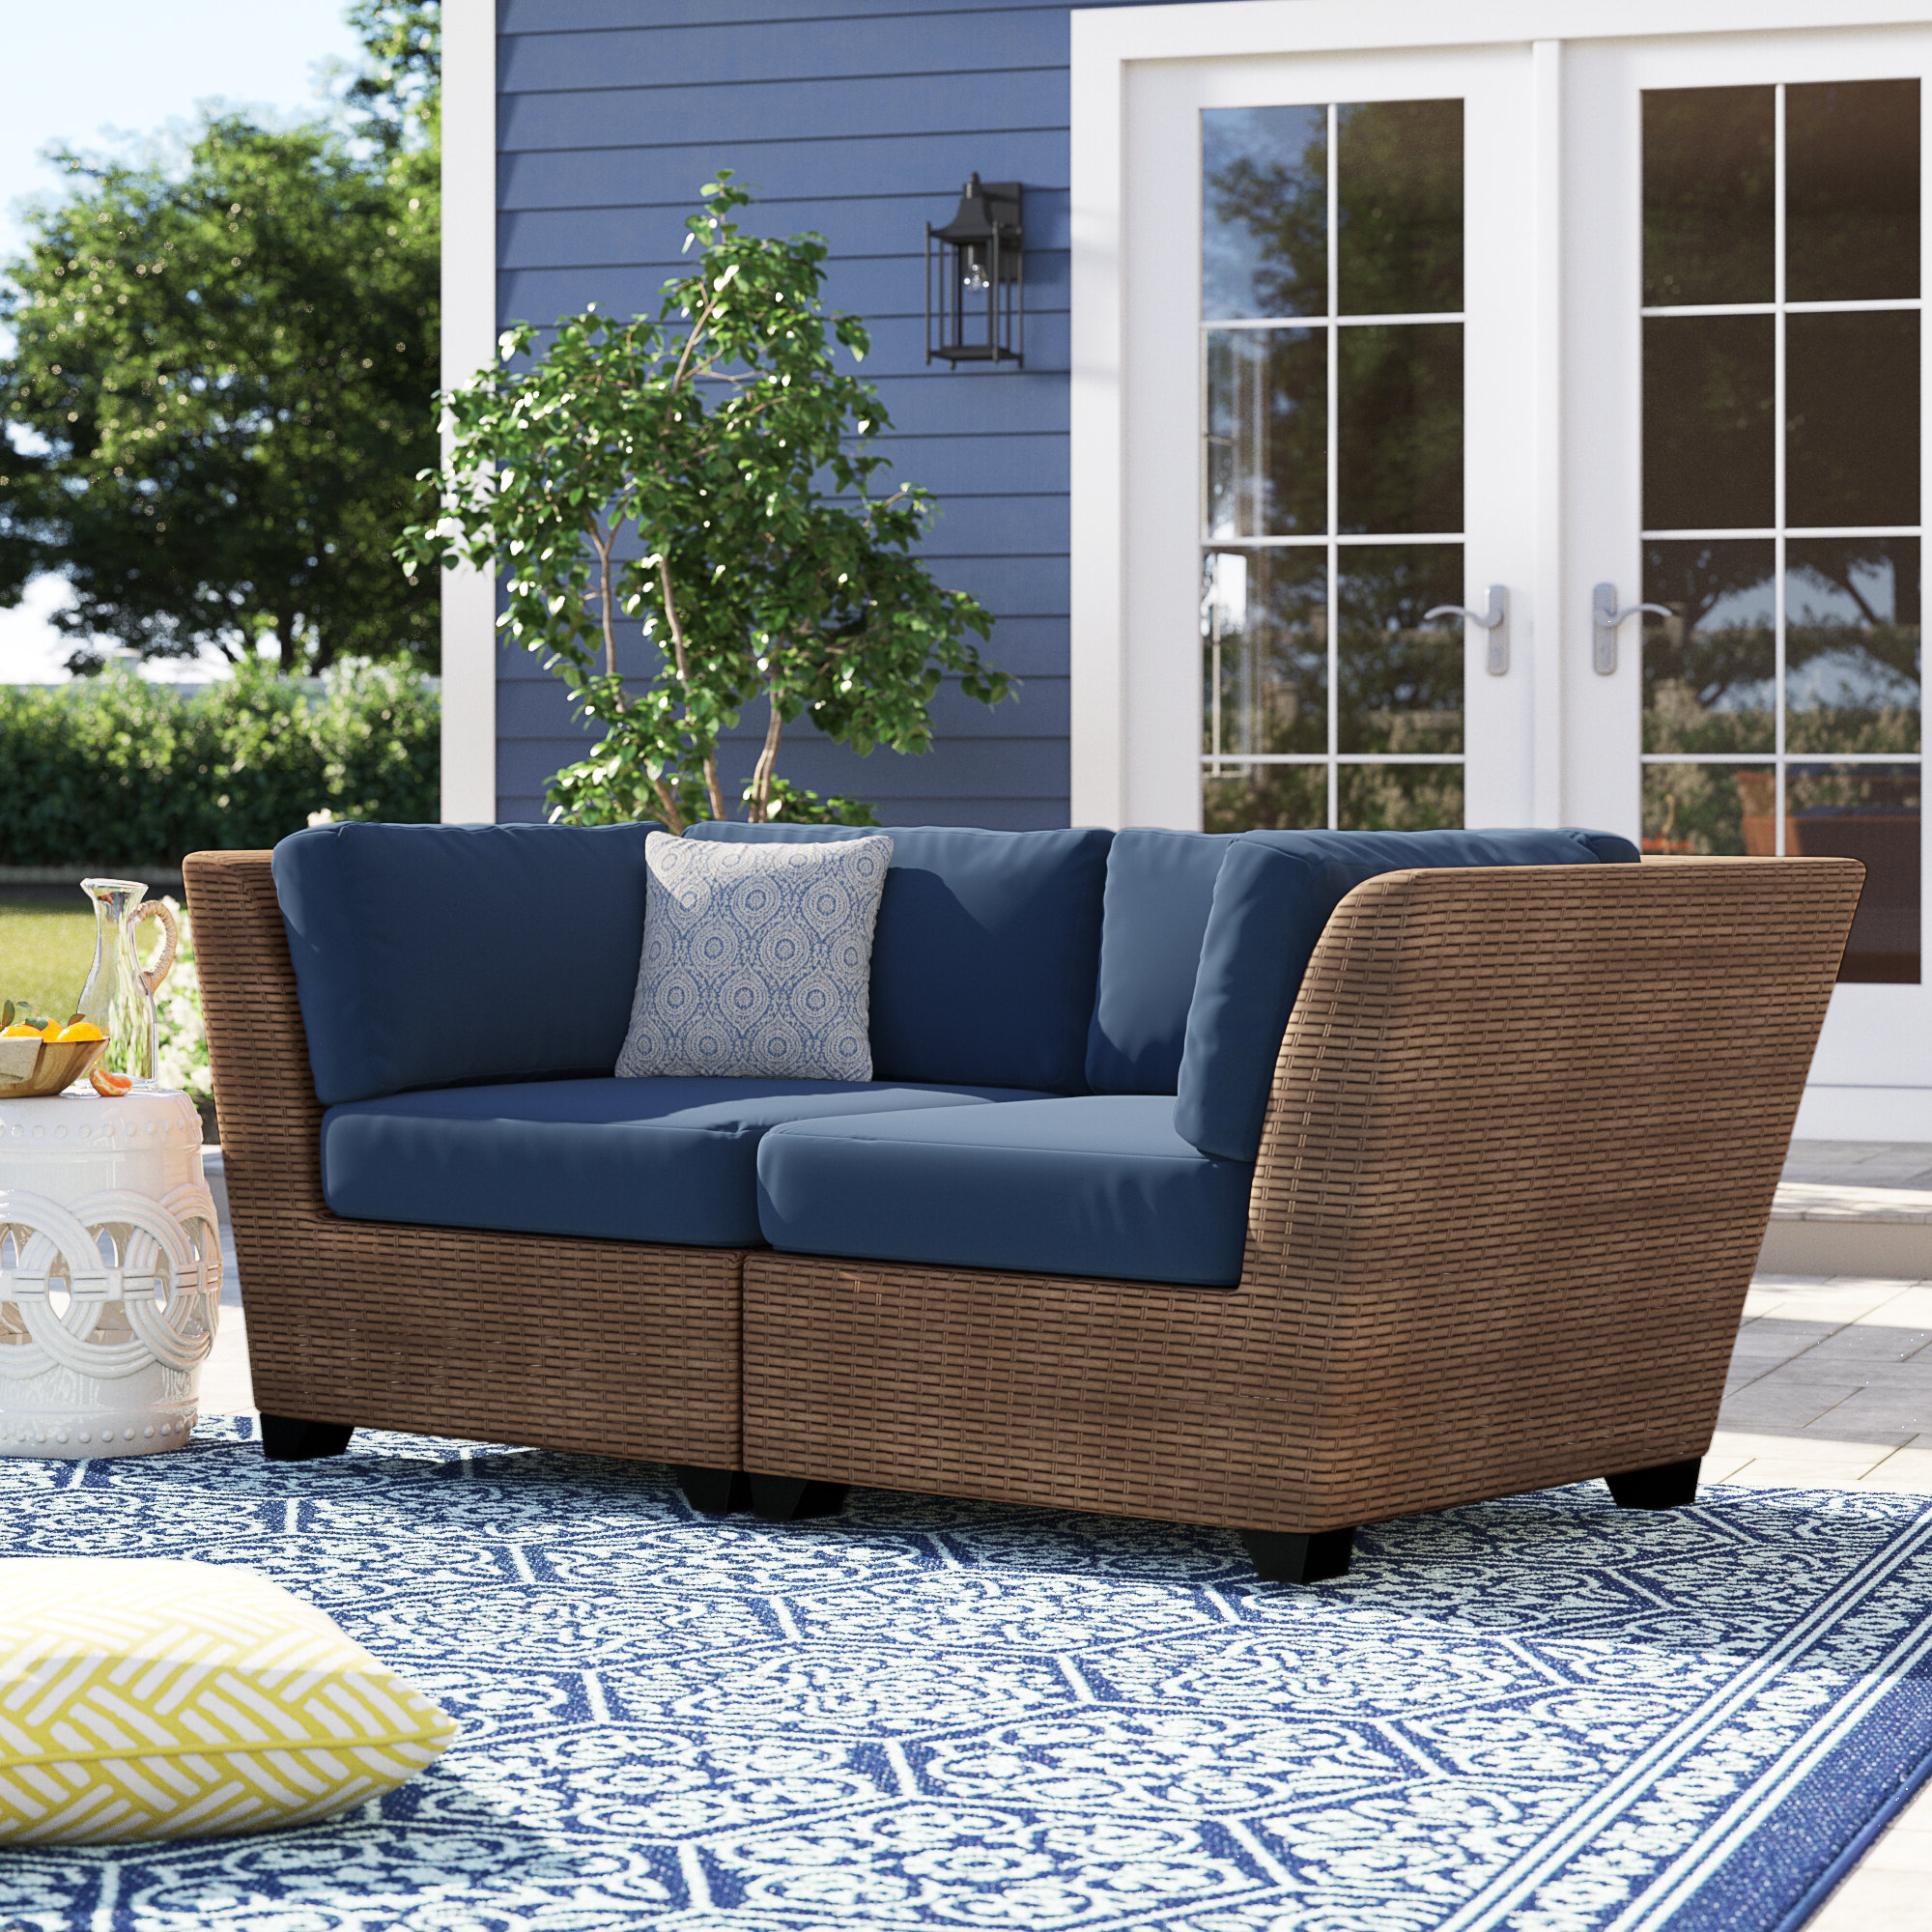 Boyce Outdoor Patio Sectionals With Cushions Throughout Well Known Sol 72 Outdoor Waterbury Patio Sectional With Cushions (View 8 of 25)